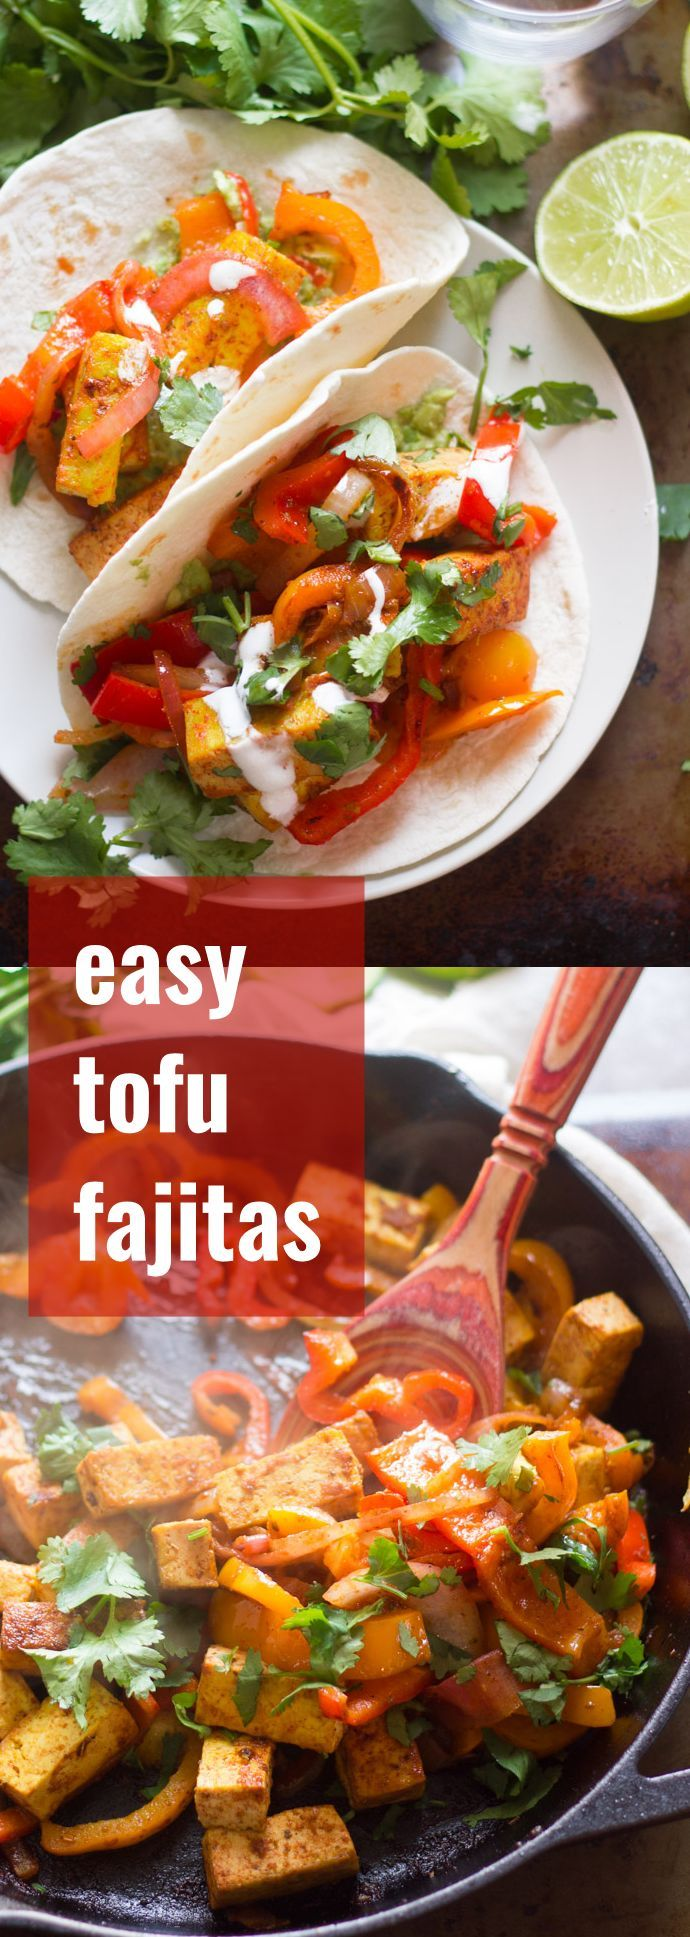 Tofu is pan-fried with peppers and onions, smothered in spicy sauce, and stuffed into warm tortillas to make these zesty vegan tofu fajitas.